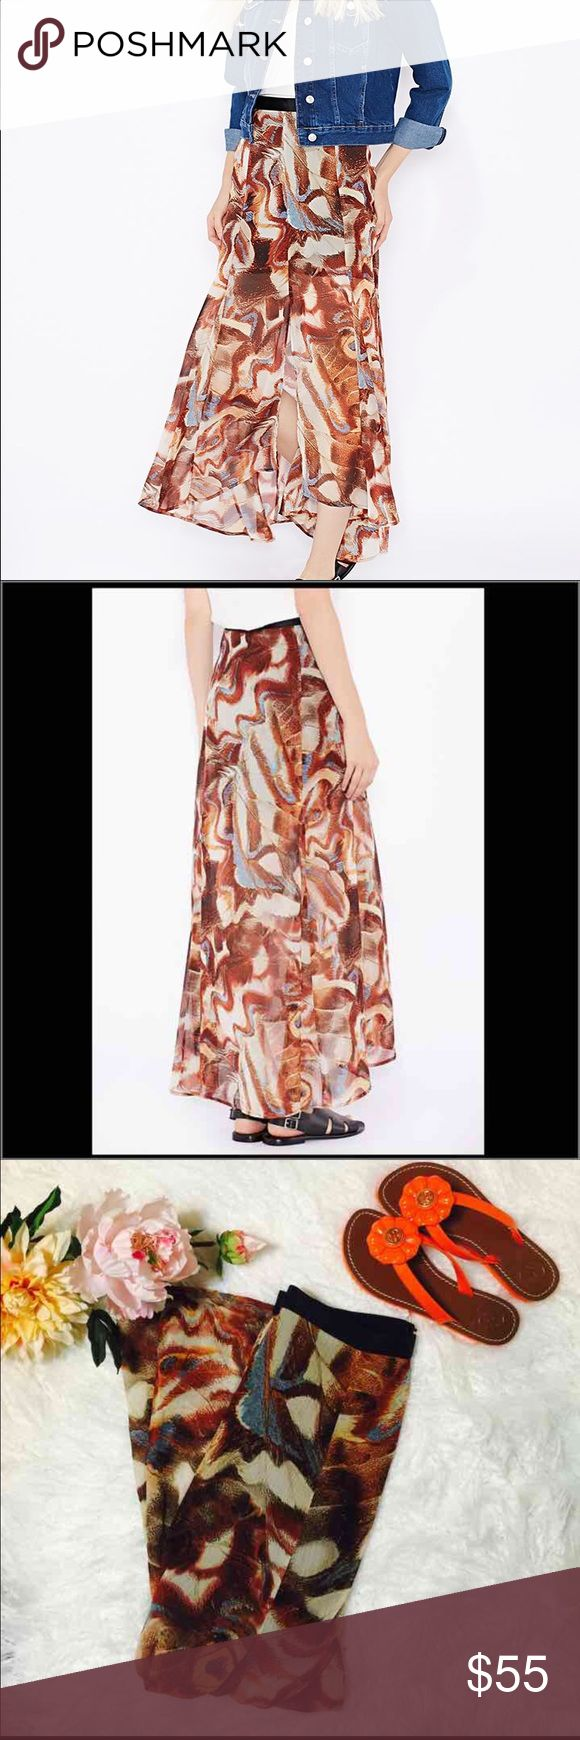 "Top shop Brown Moth Wing Print Maxi Skirt S30-Think boho vibes in this moth print maxi skirt. Cut with a split front and longer hem to the back, this floaty, fluid shape drapes effortlessly. 100% Polyester. Flat across @ waist: 14"", Lenght: 39"". NWT Topshop Skirts Maxi"